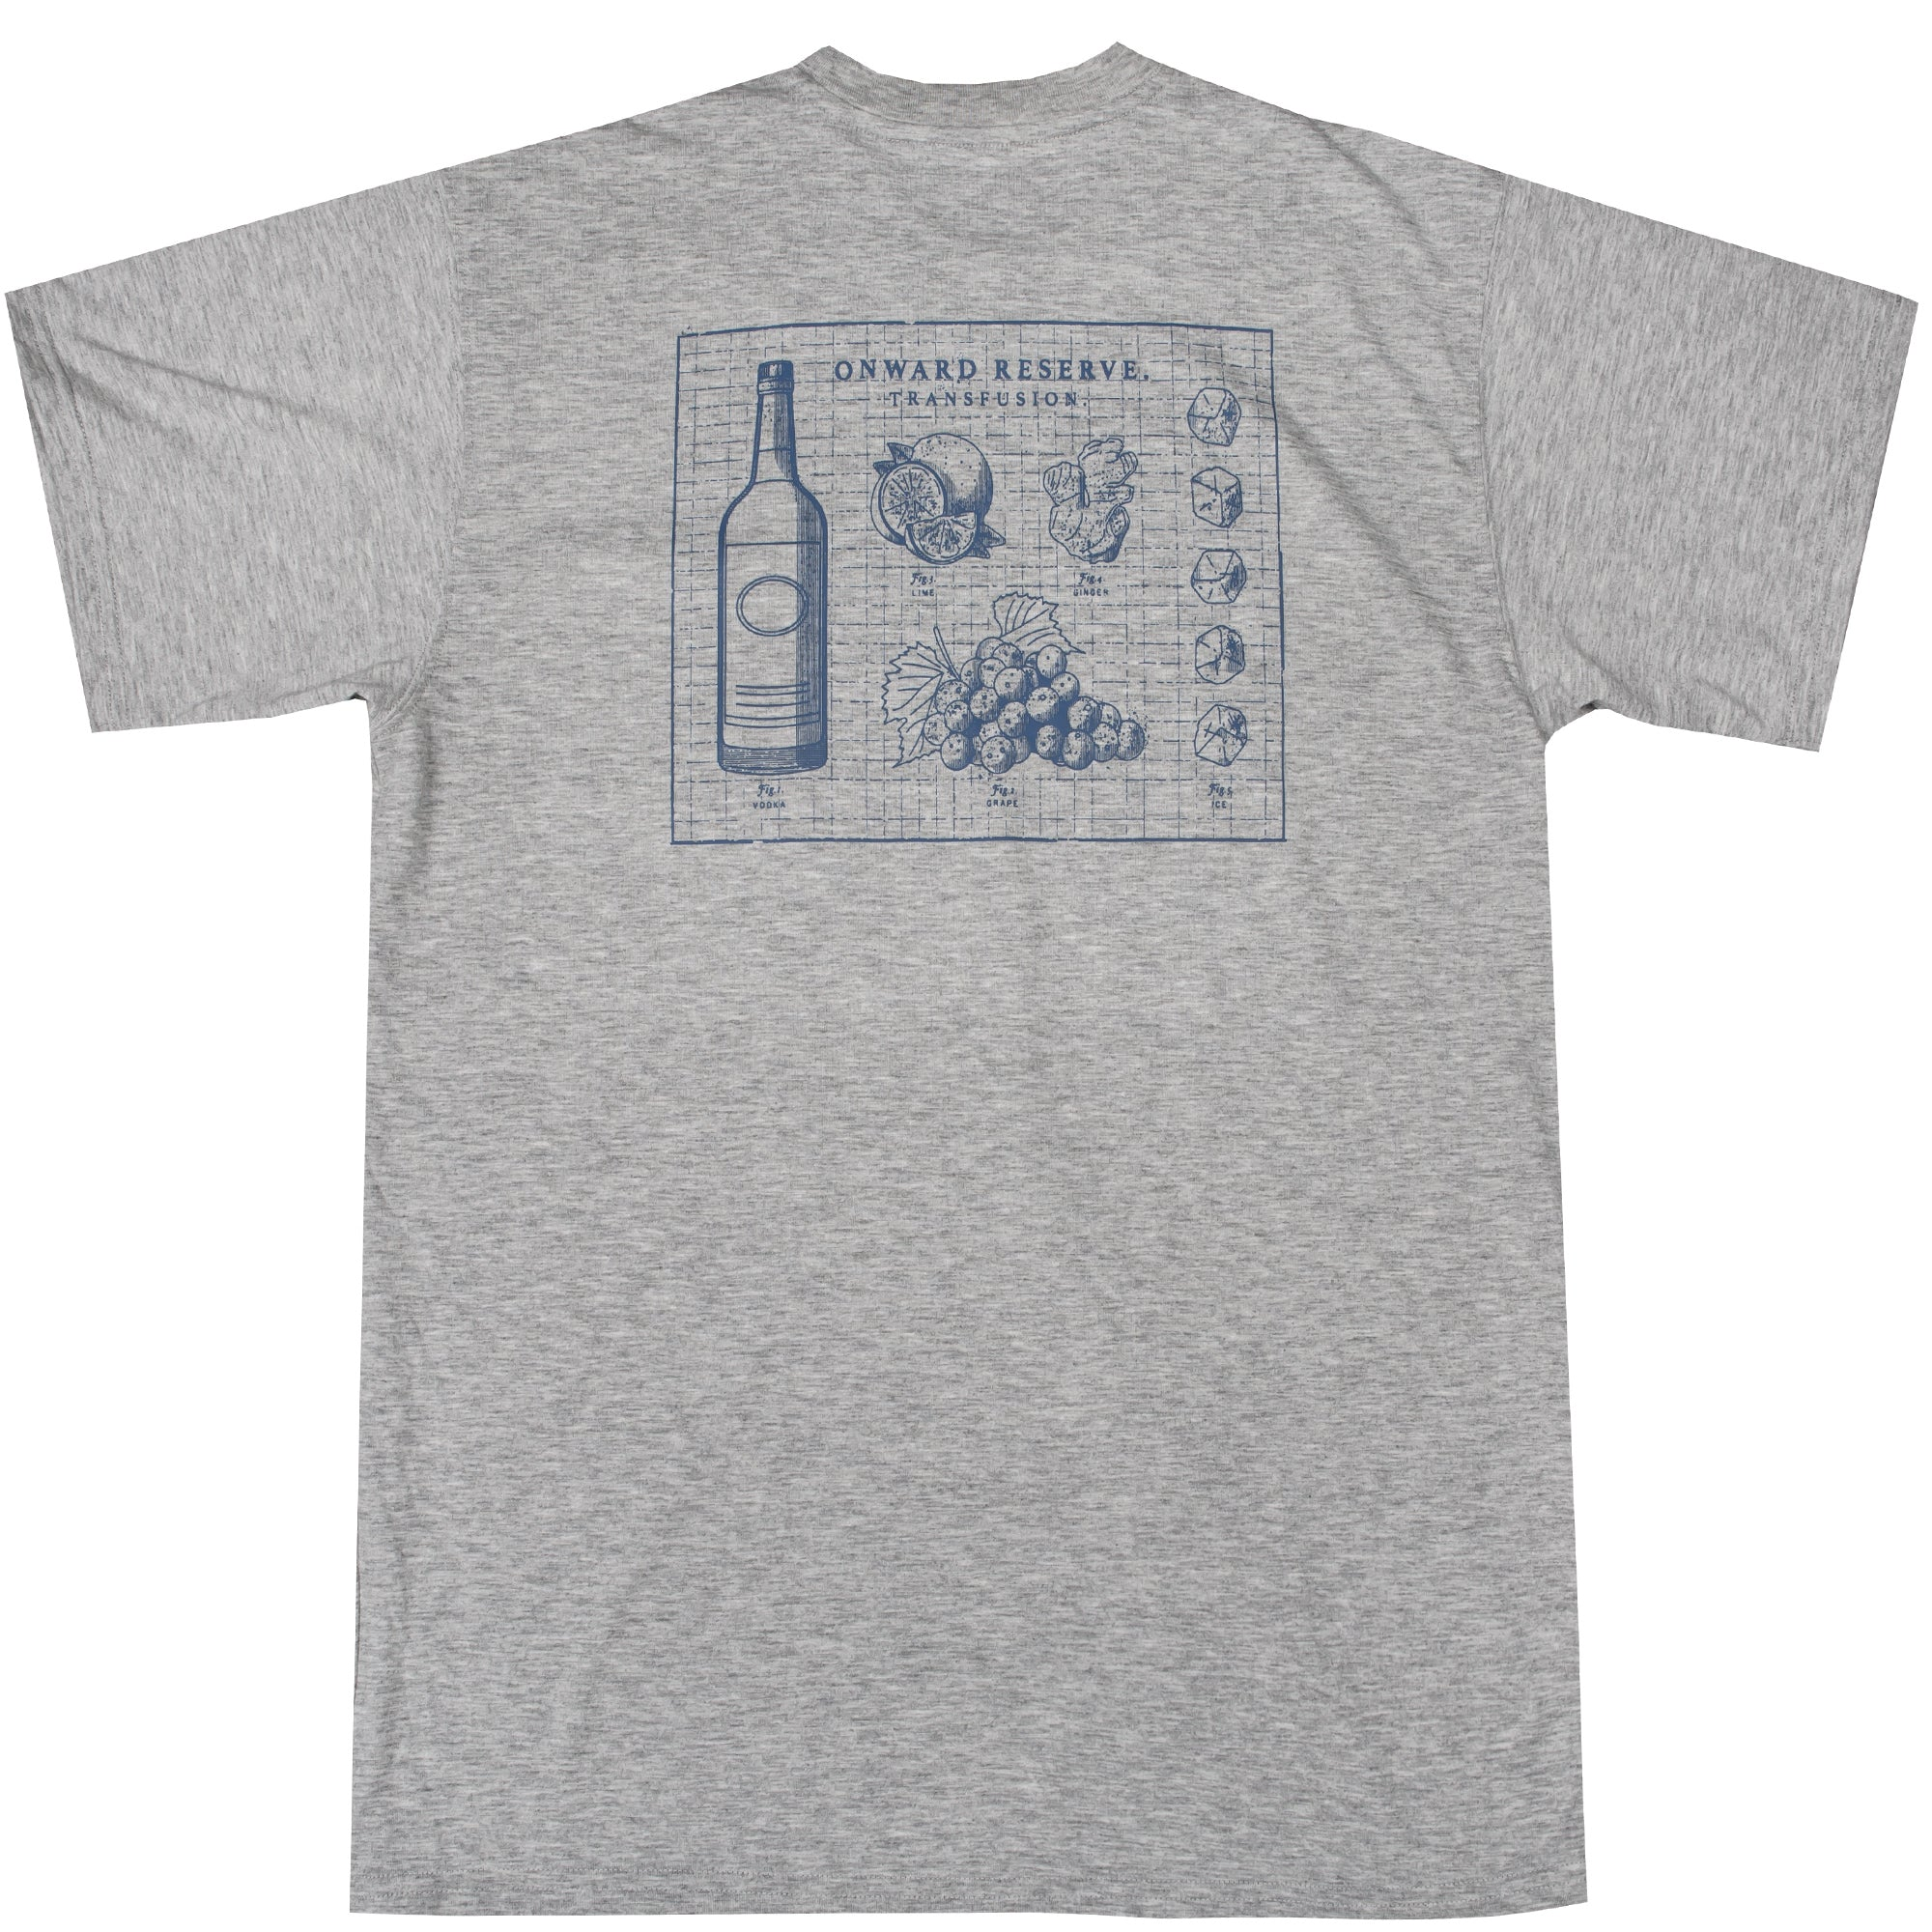 Transfusion Short Sleeve Tee- Heather Grey